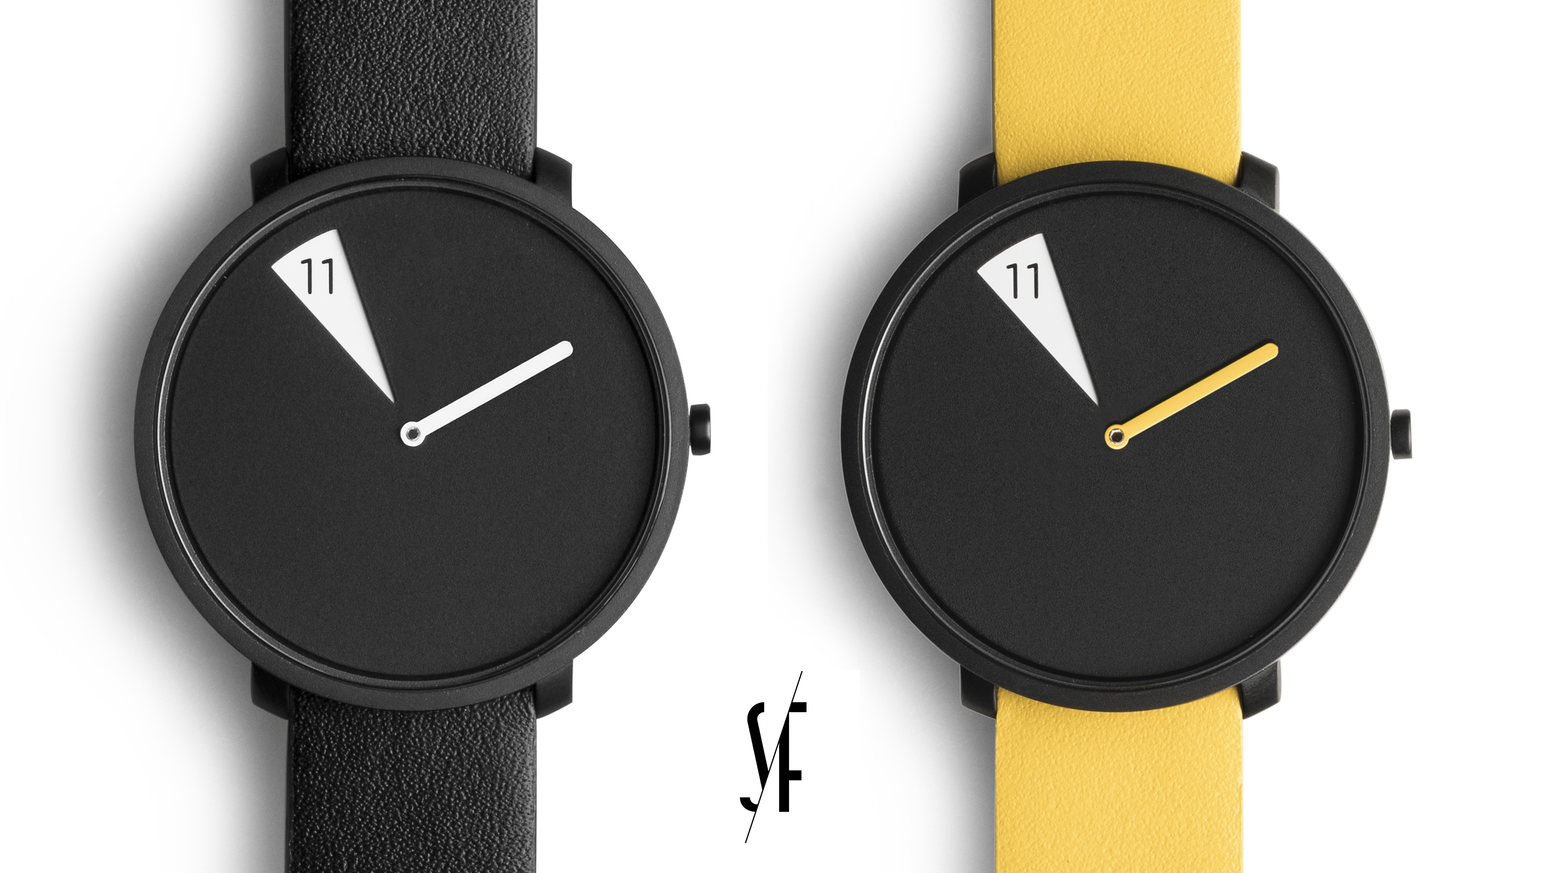 MINIMALIST WATCH TO READ THE TIME WITHOUT DIFFICULTIES! For everyone and every situation! Designed in Florence, Italy.